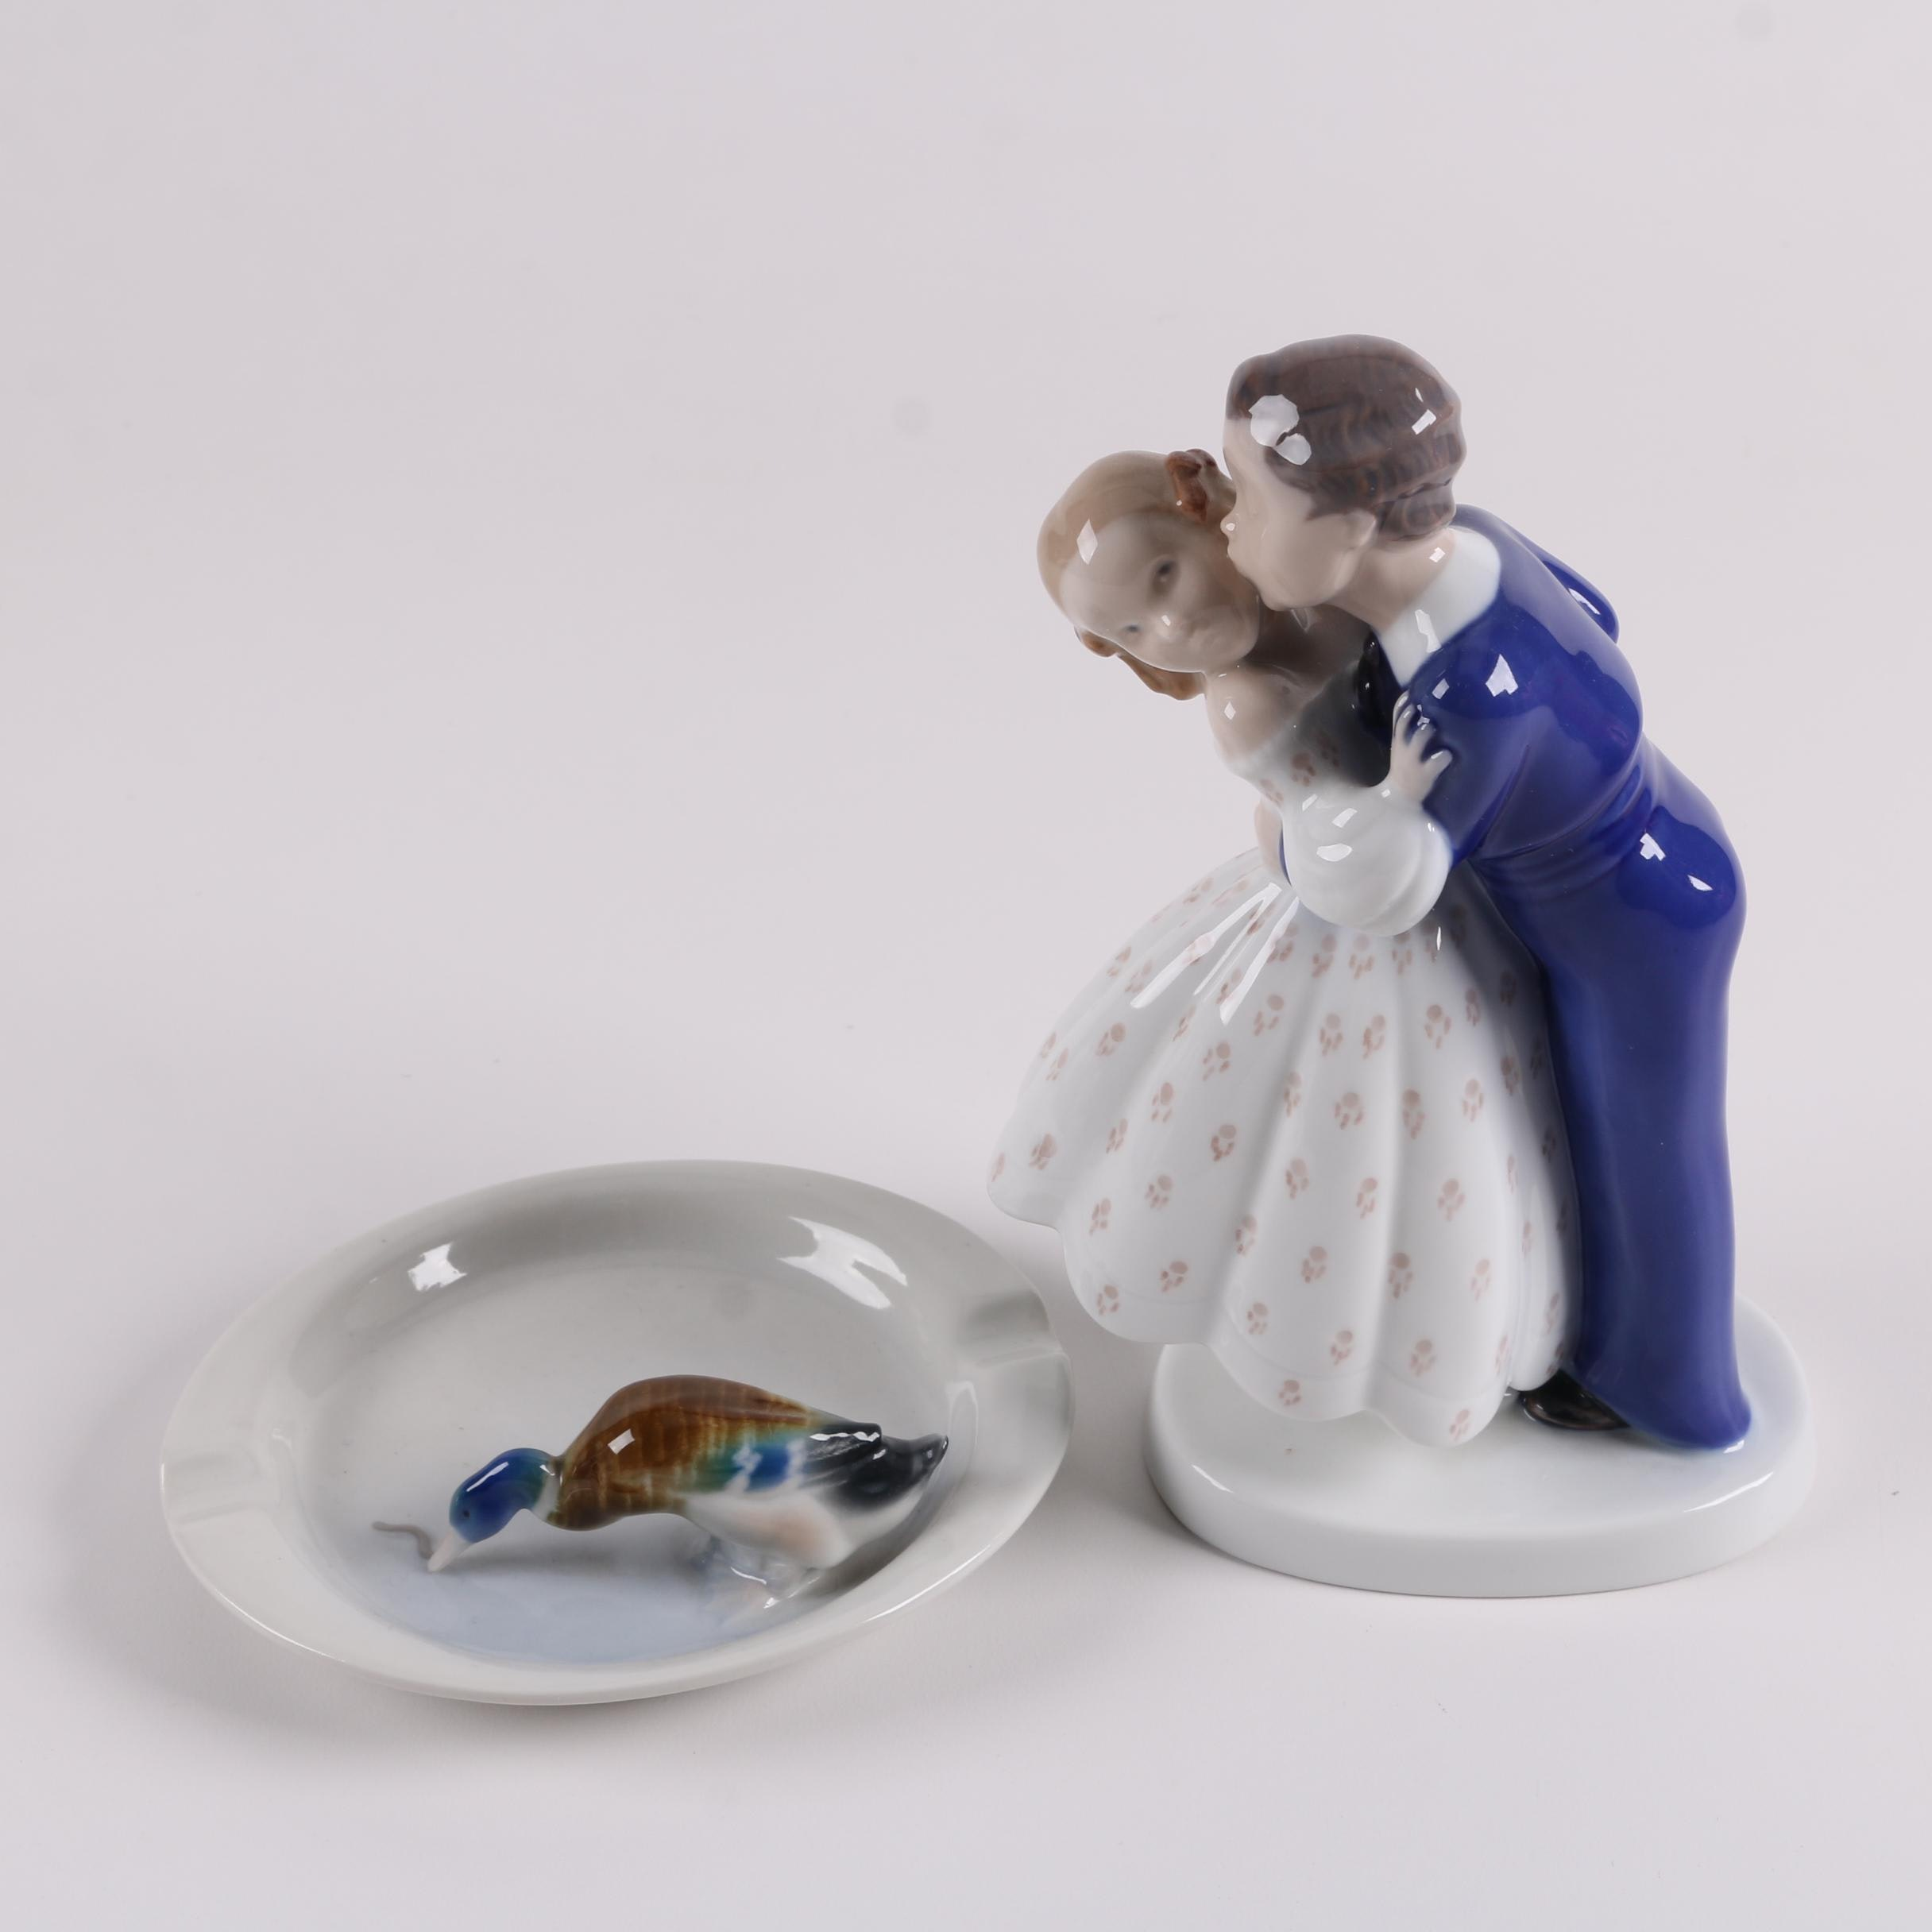 Bing & Grøndahl Porcelain Figurine and Metzler & Ortloff Figurative Ash Receiver